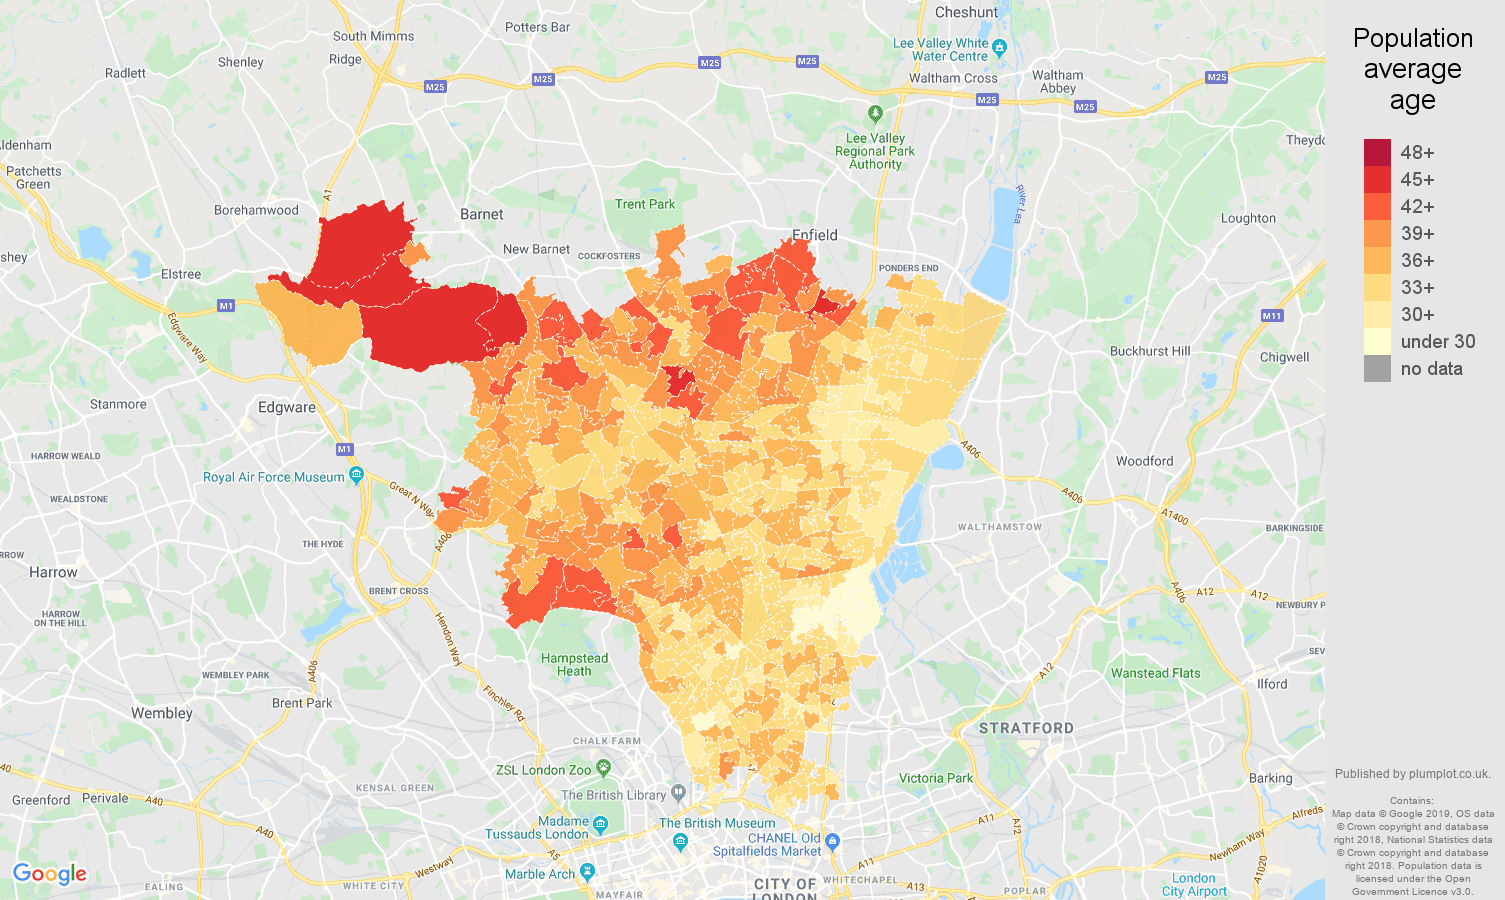 North London population average age map